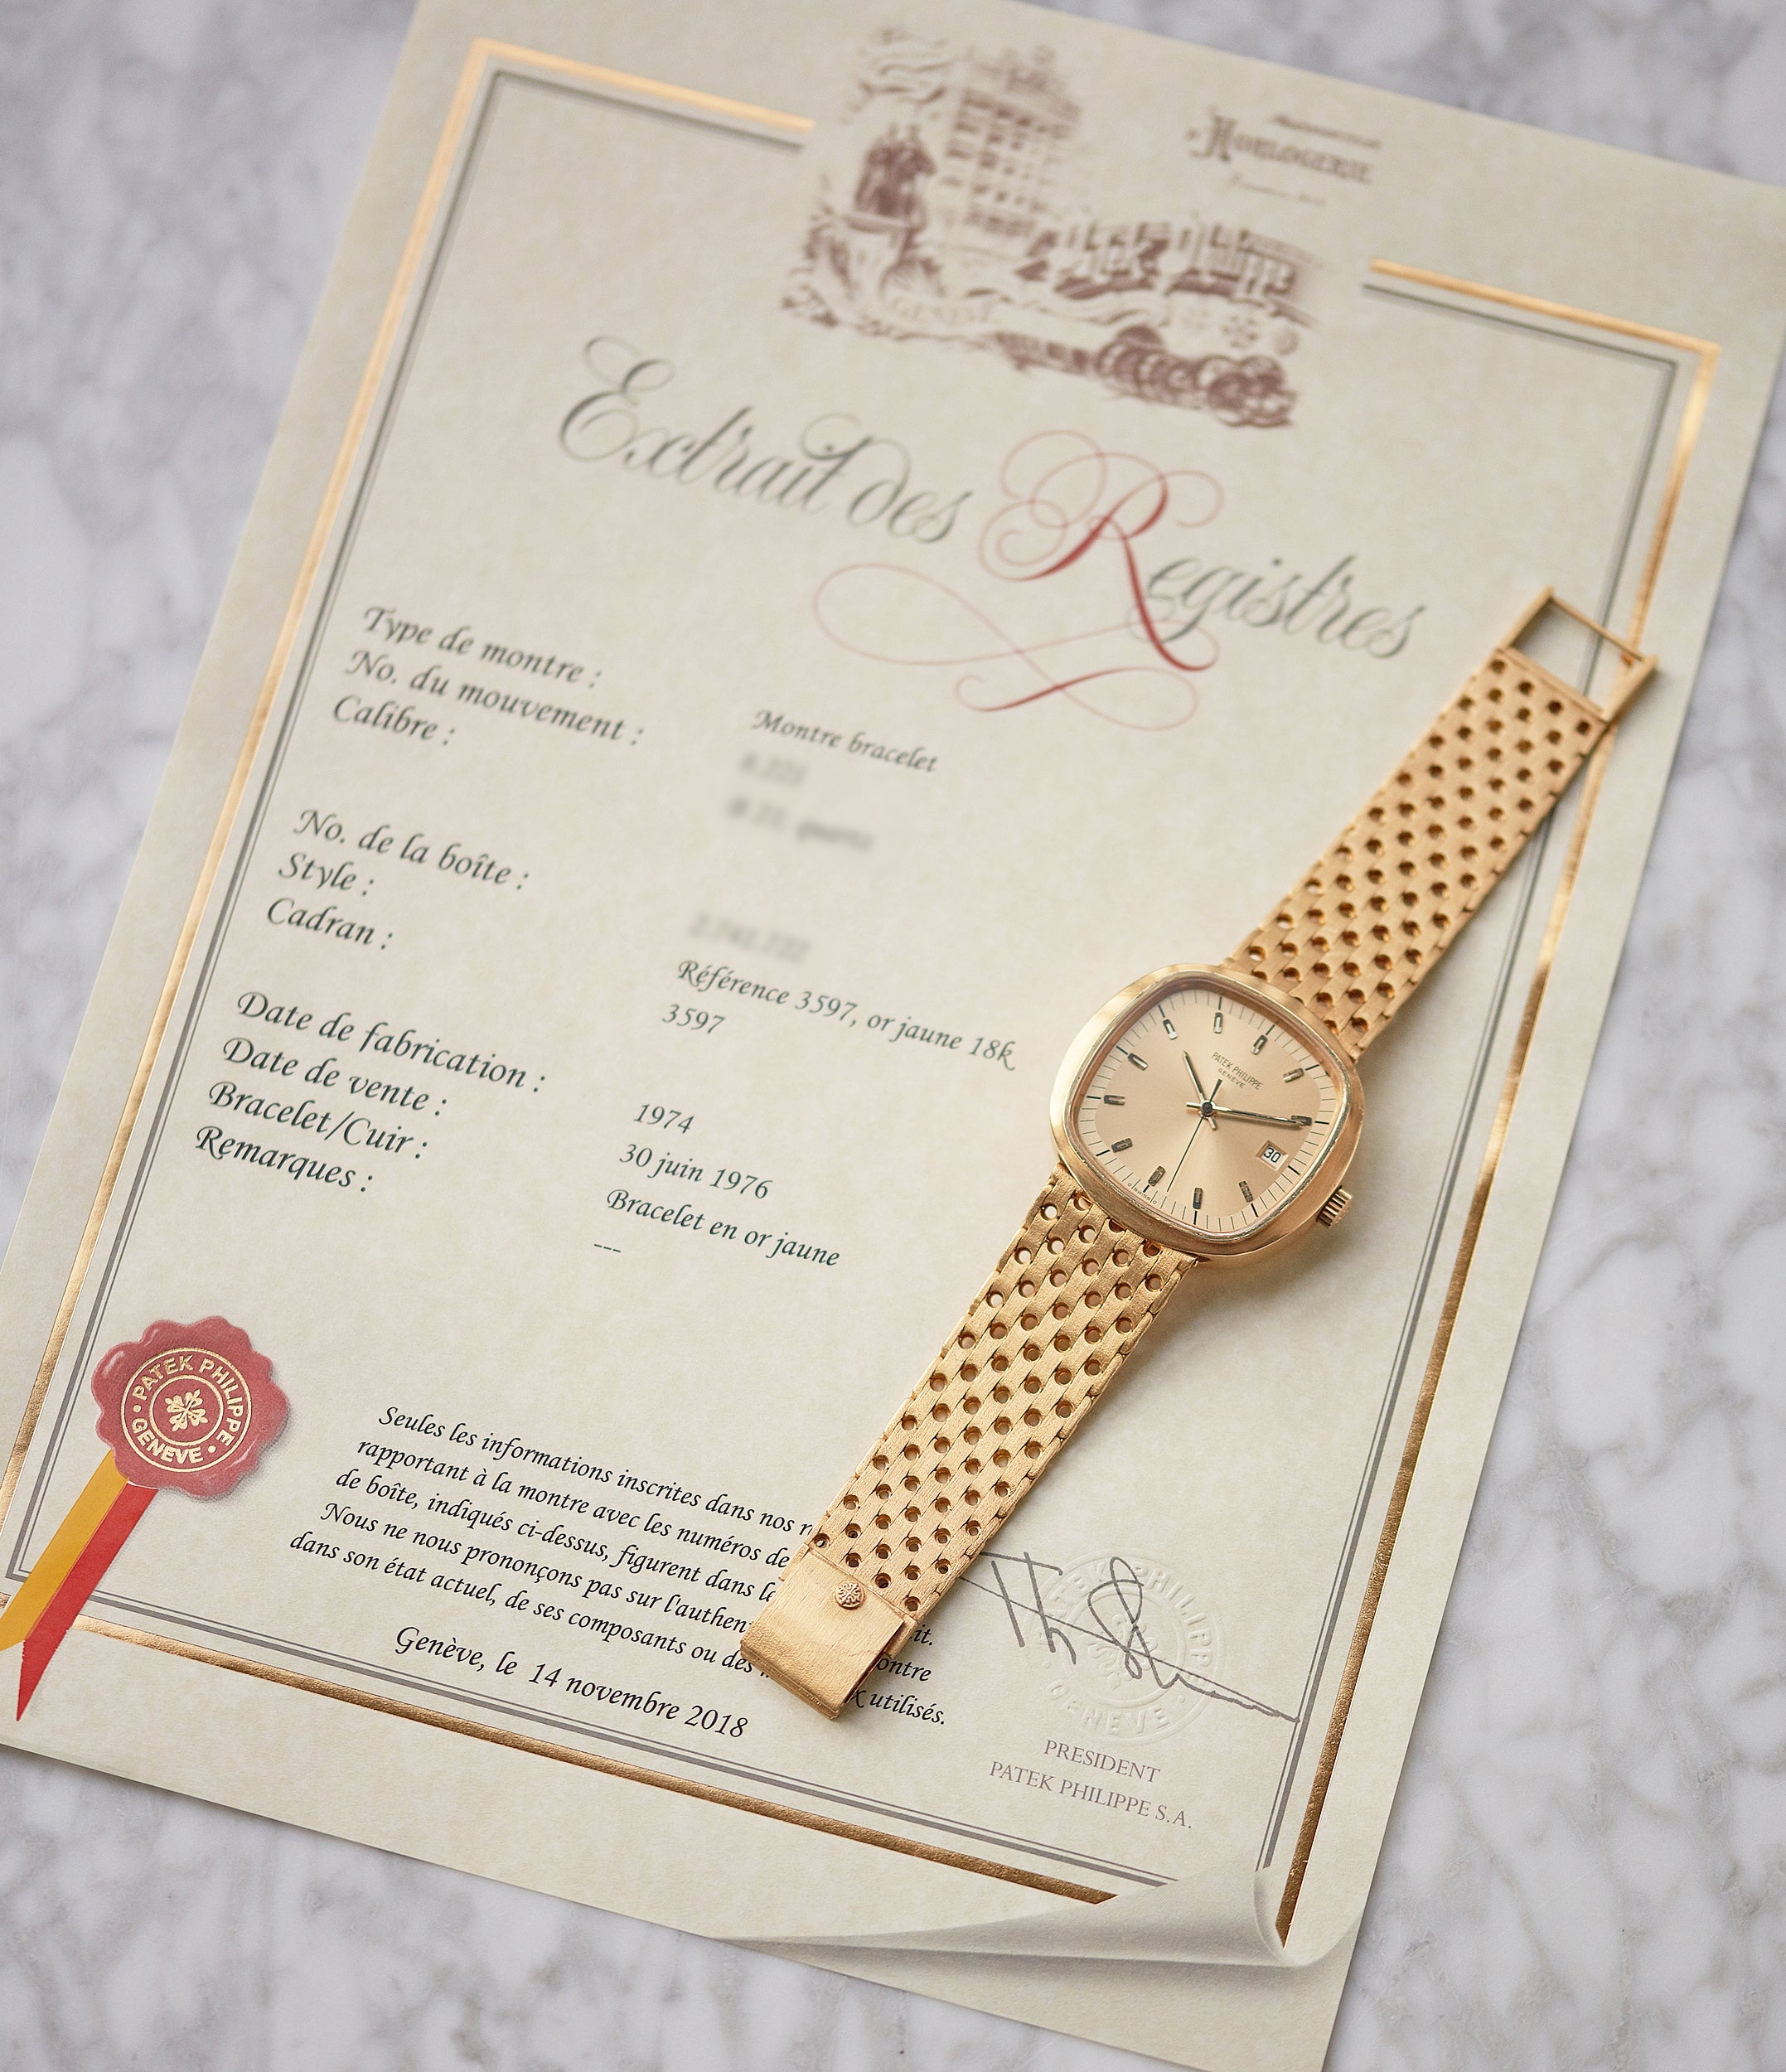 Patek Philippe Archive Extracts 3597 Beta 21 yellow gold 1970s dress watch for sale online A Collected Man London UK specialist of rare watches